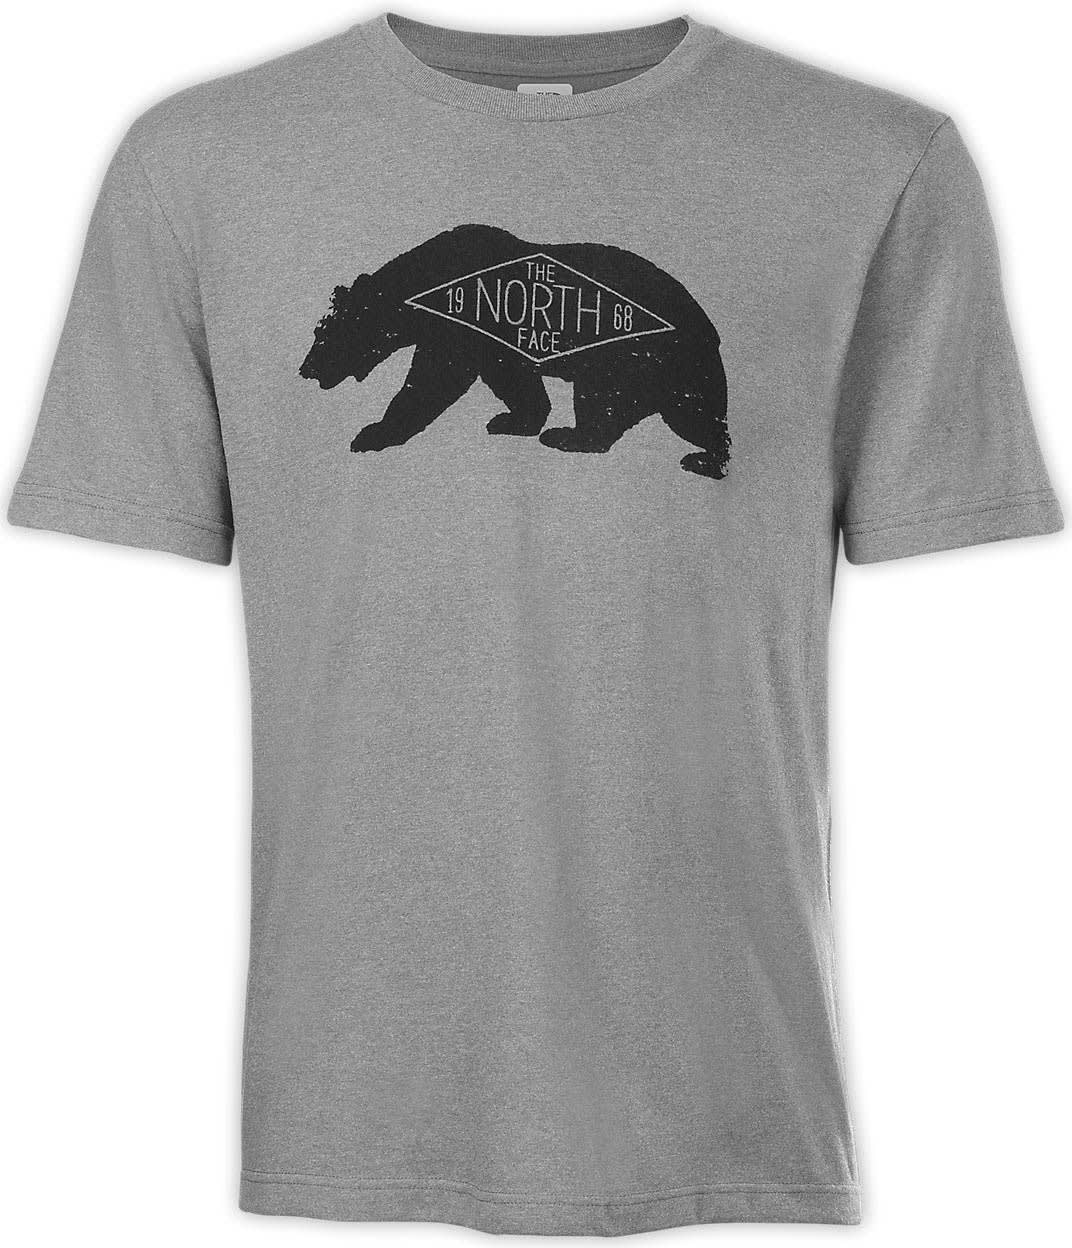 on sale the north face heritage bear t shirt up to 50 off. Black Bedroom Furniture Sets. Home Design Ideas